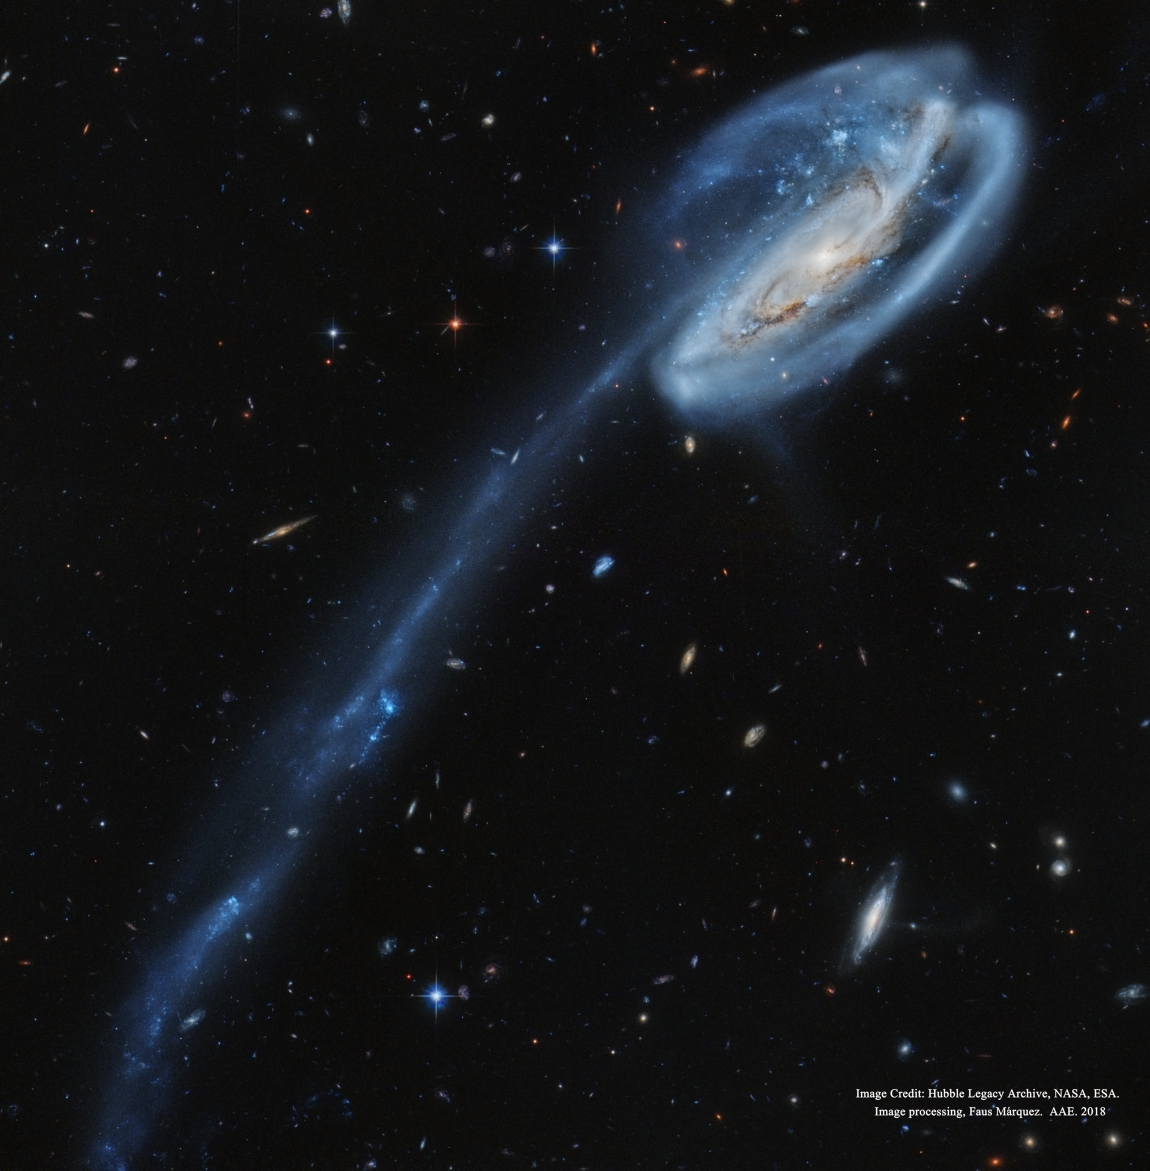 2018 December 11 - Arp 188 and the Tadpole's Tail